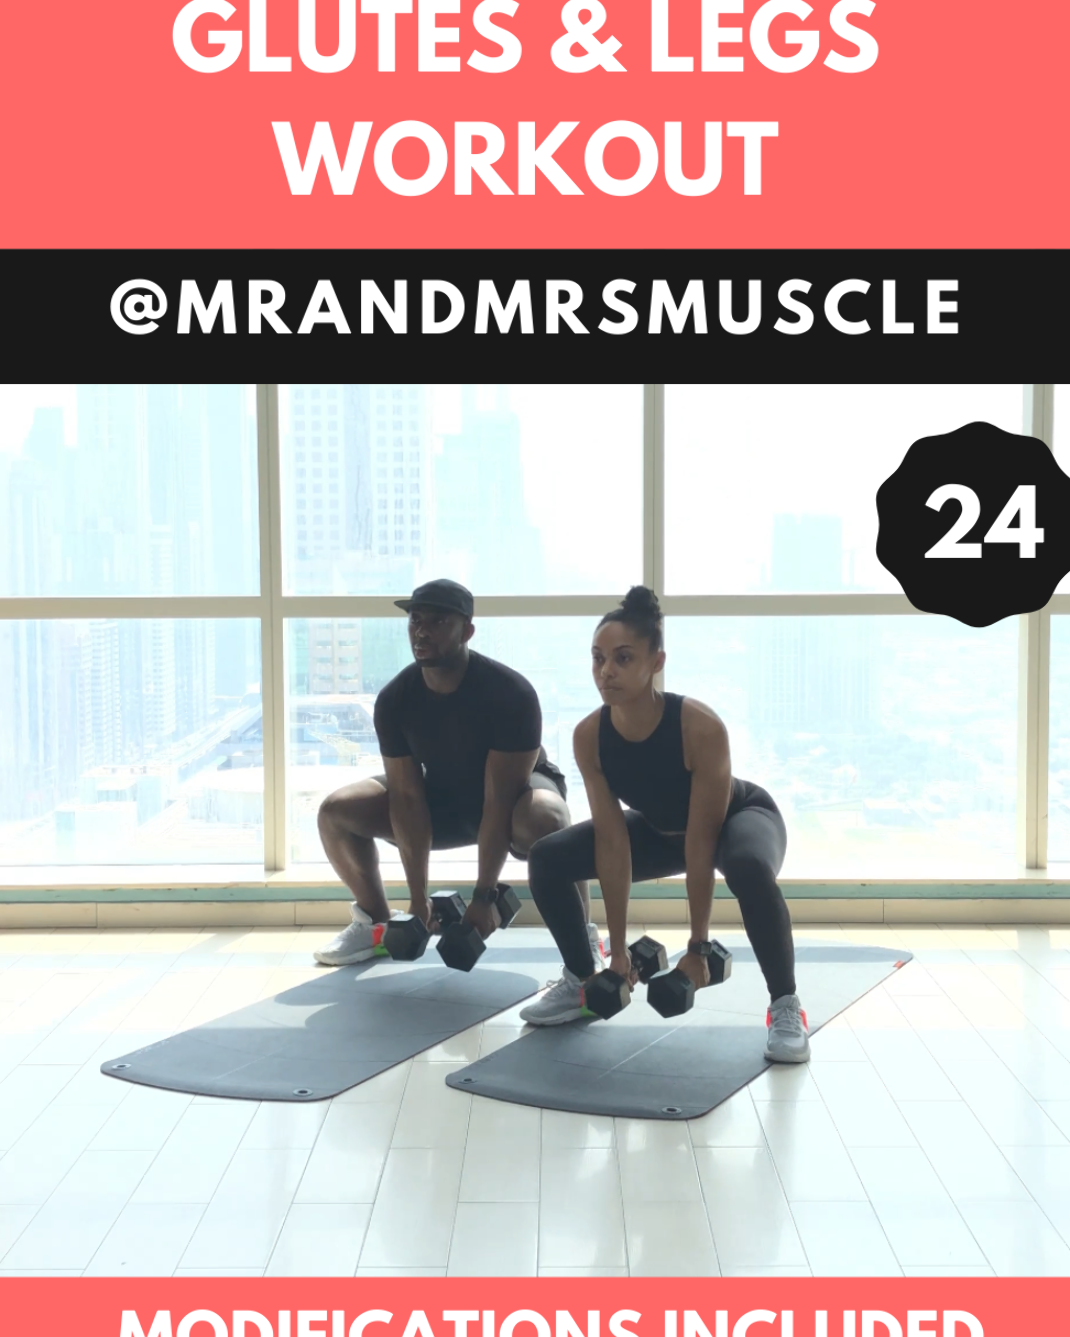 Burn Fat and Sweat Buckets with this intense Legs and Glutes HIIT Session!! Hundreds more workout available on our channels. --- #gluteworkout #gluteworkoutwomen #glutesworkout #gluteactivationexercises #gluteexercises #gluteexercisesforwomen #gluteworkoutathome #glutesworkoutathome #glutesworkoutmen #glutesandhamstringsworkout #glutesexercises #legworkout #legsworkout #legsandglutesworkout #legworkoutathome #mrandmrsmuscle #fitness #hiit #pintowin2019